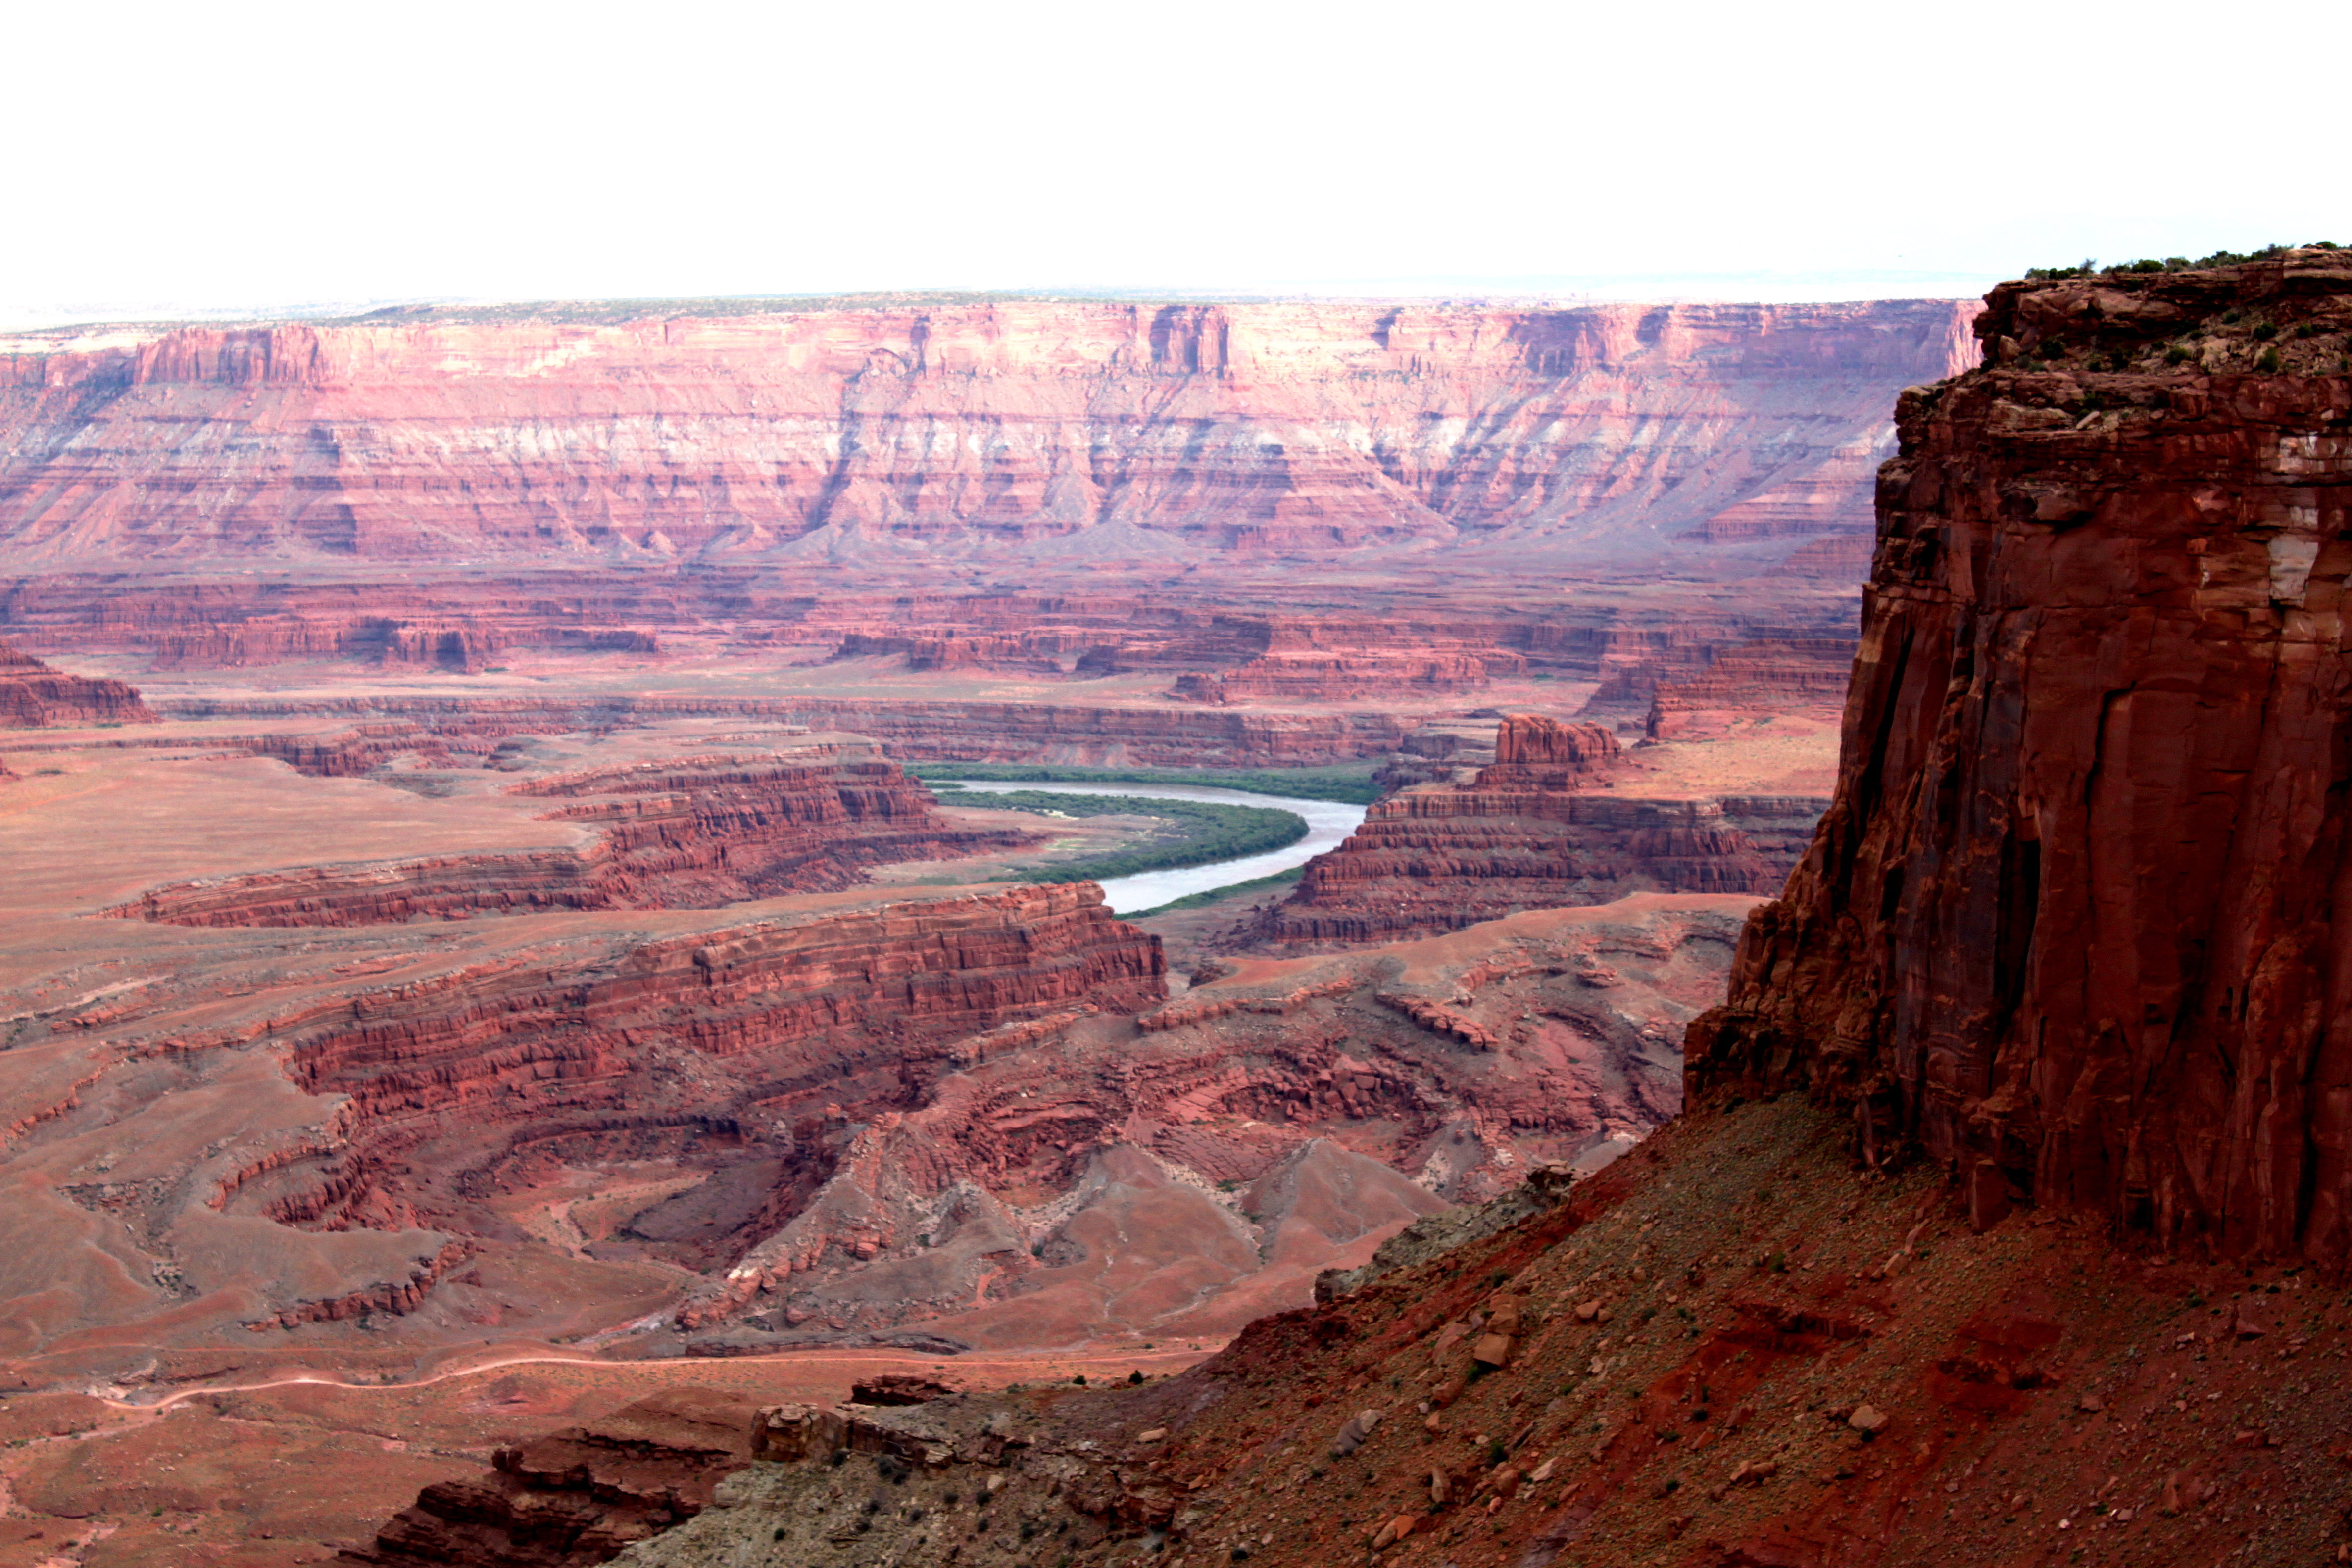 View from Dead Horse Point, Moab Utah